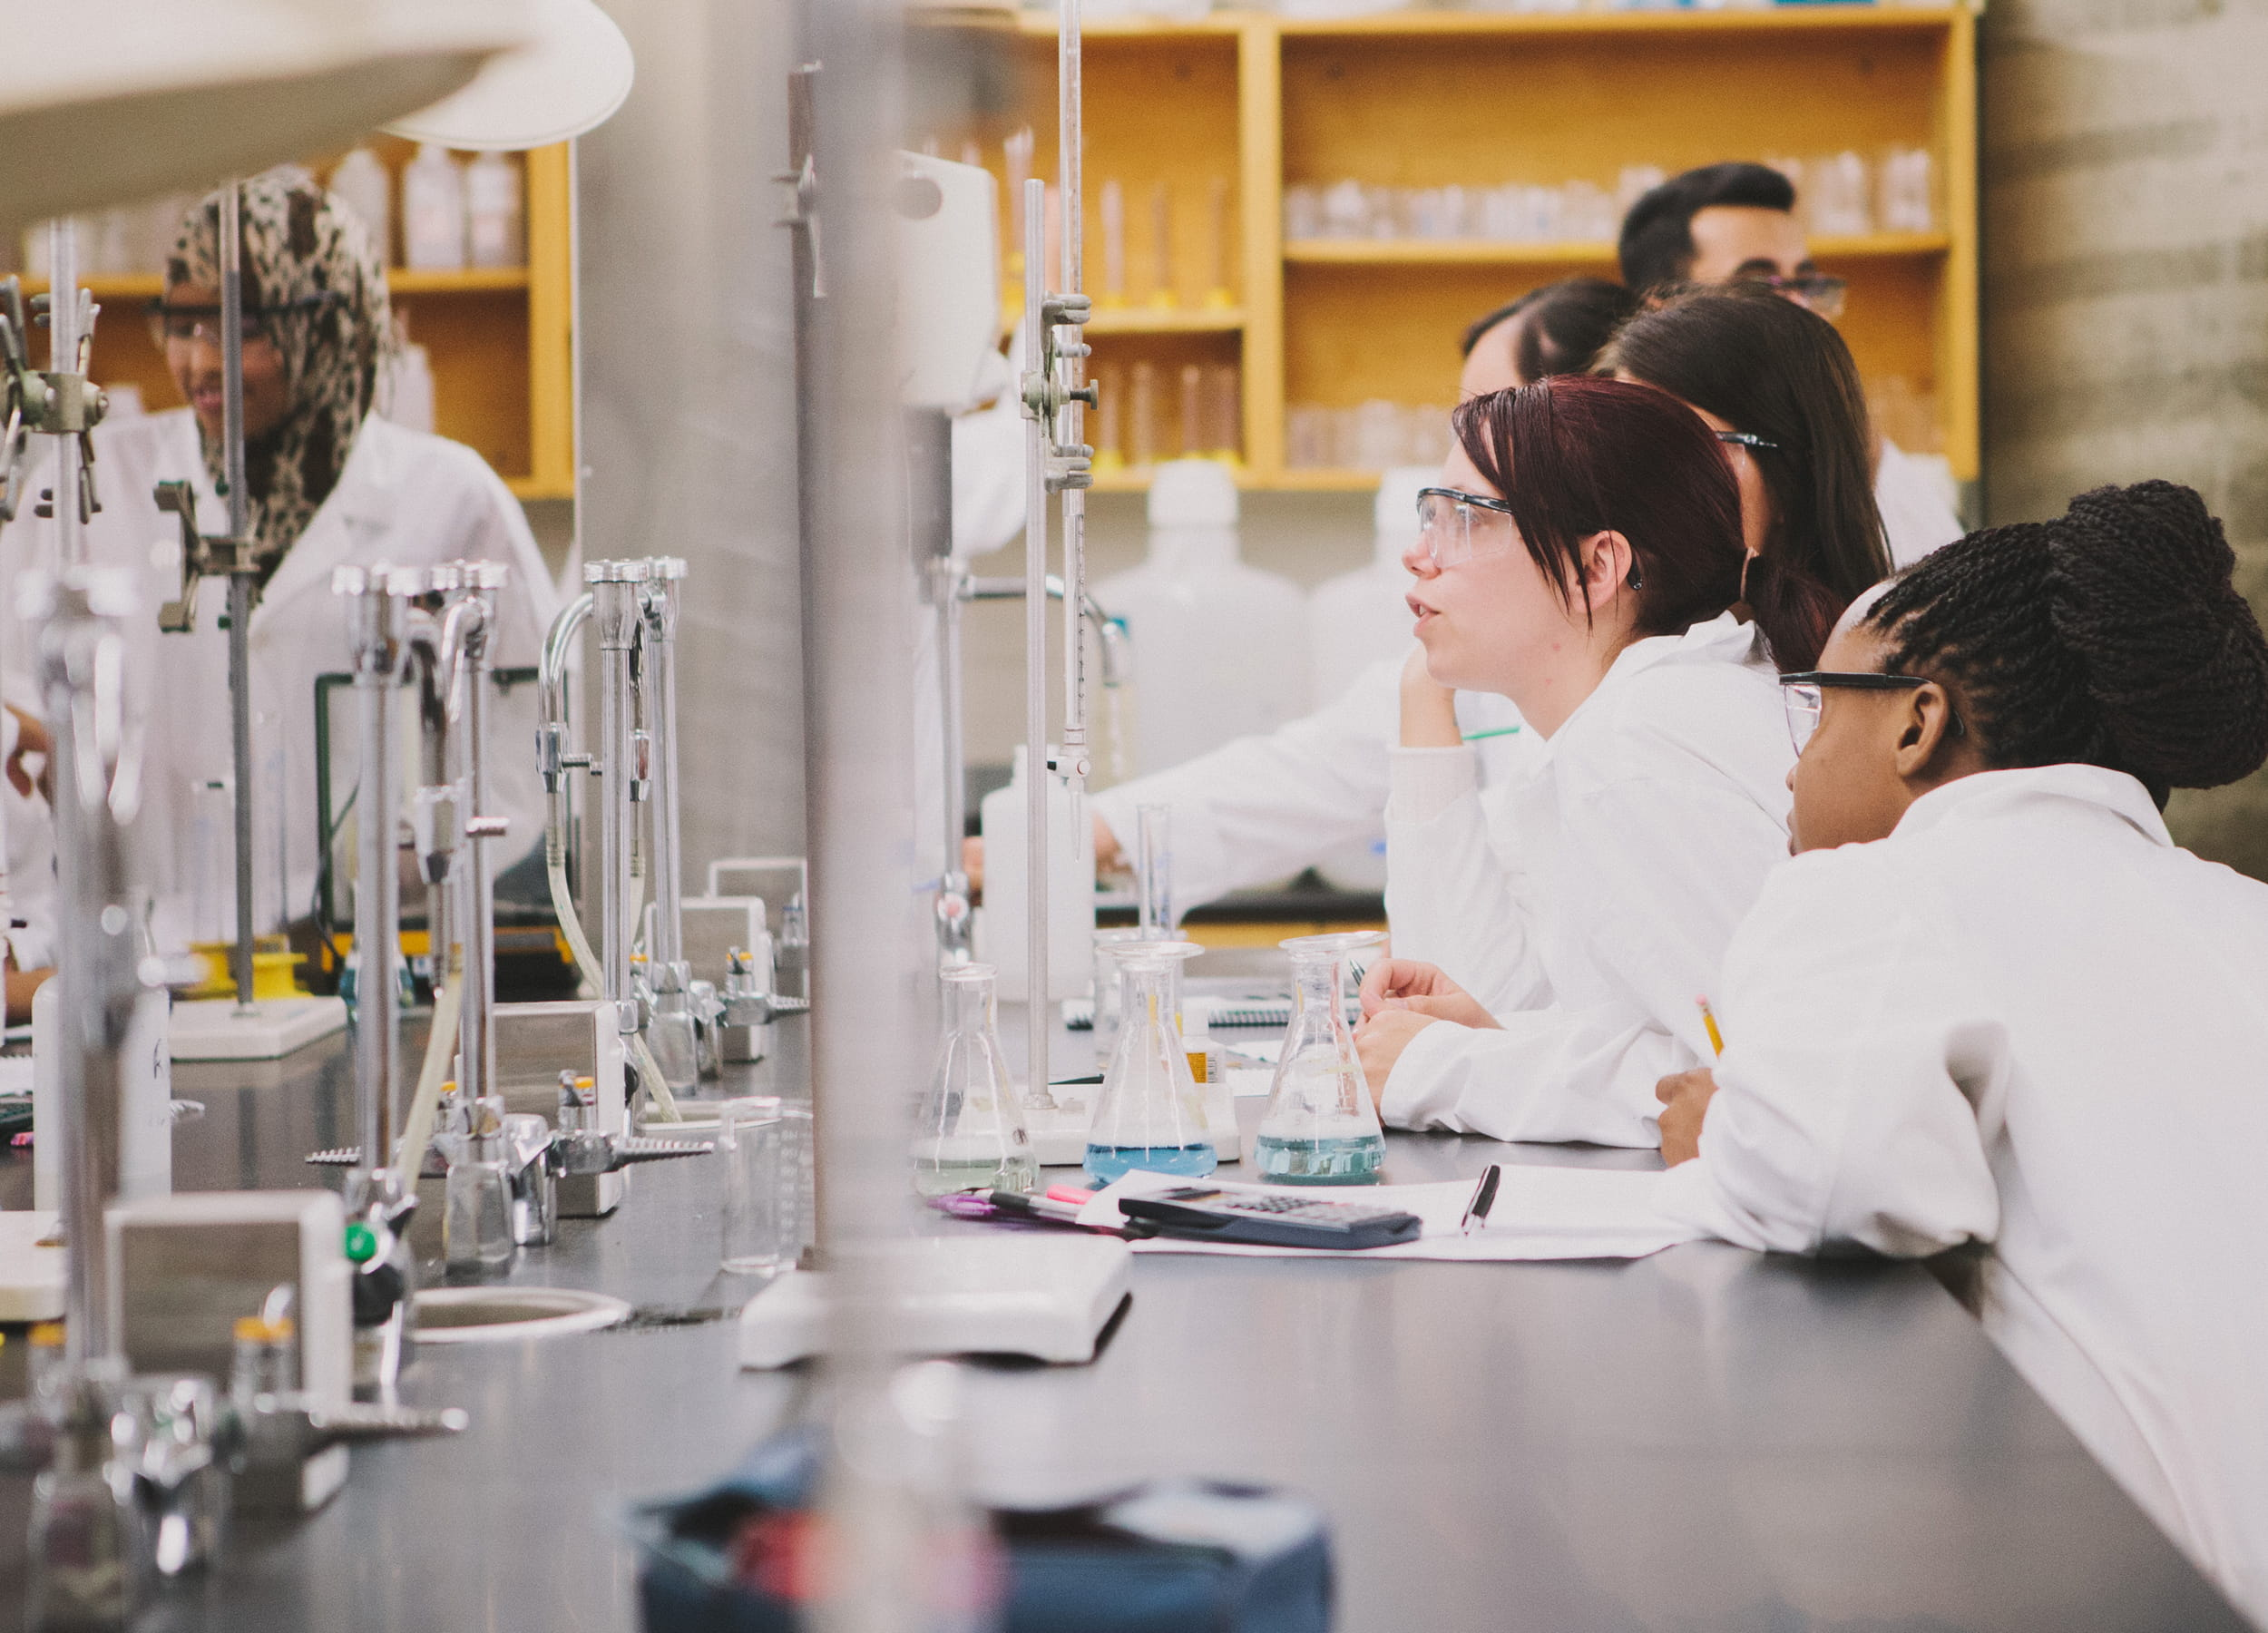 Chemical engineering students in a laboratory